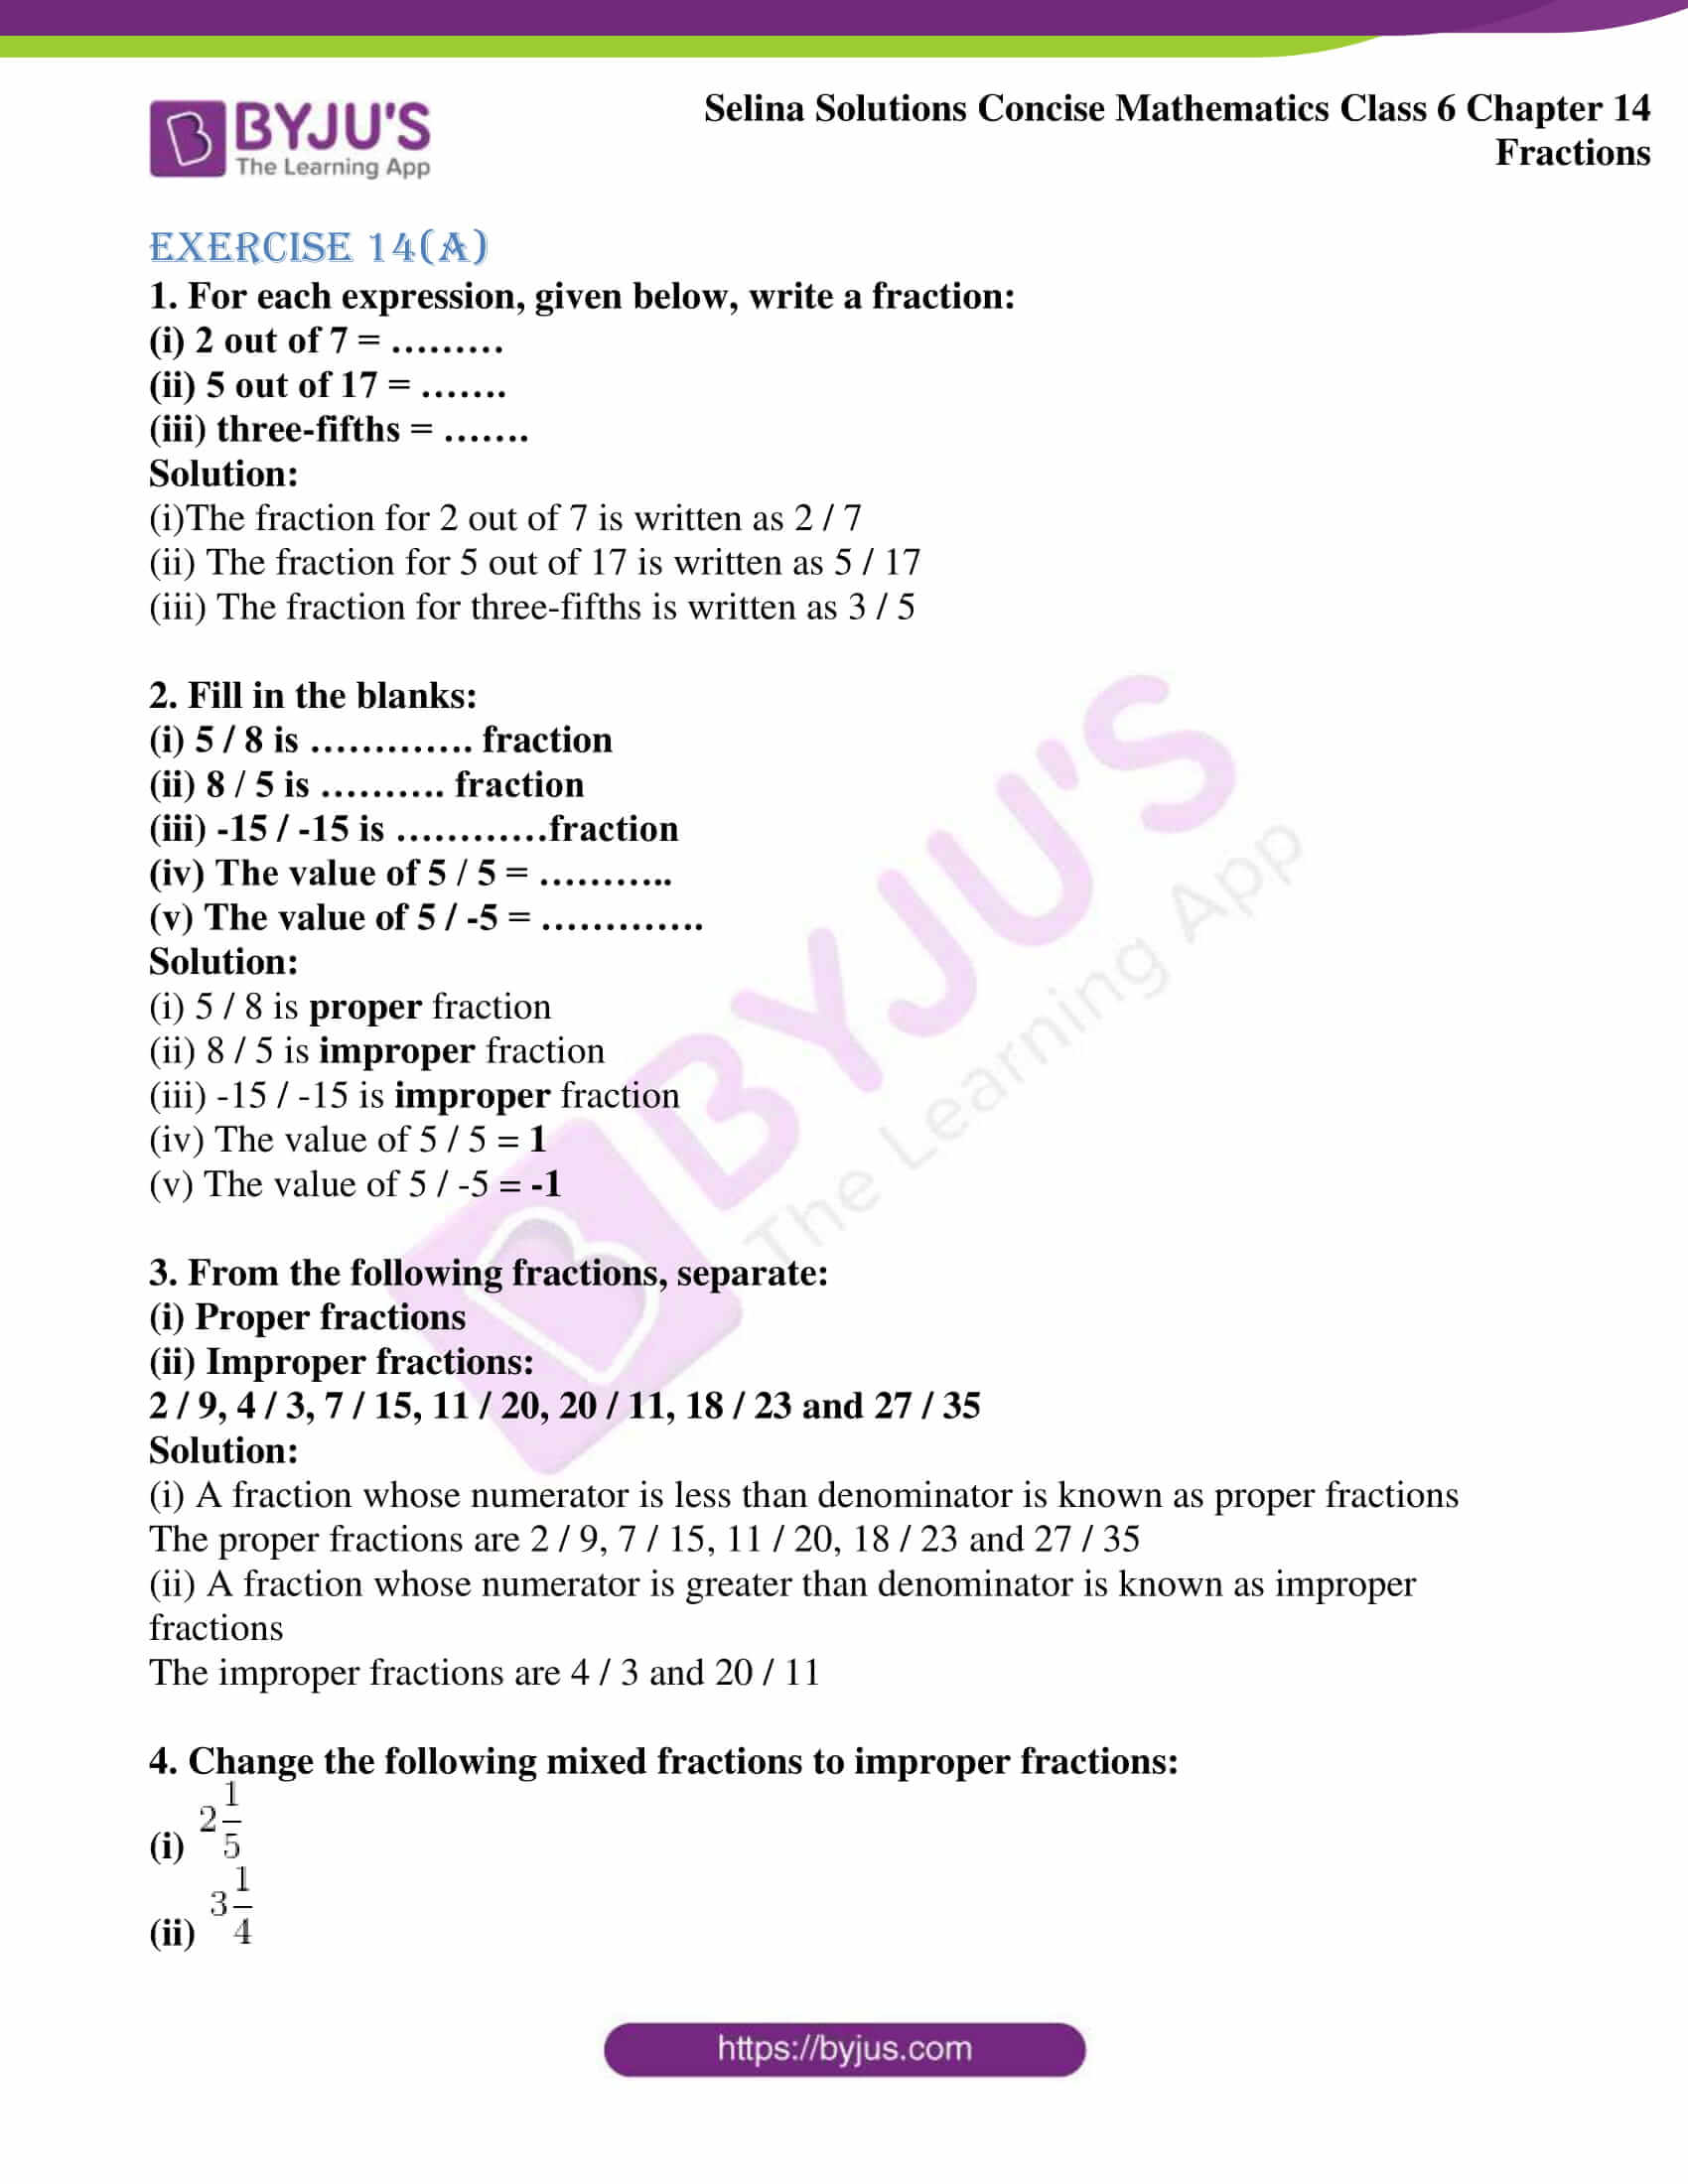 selina solution concise maths class 6 chapter 14 ex a 1